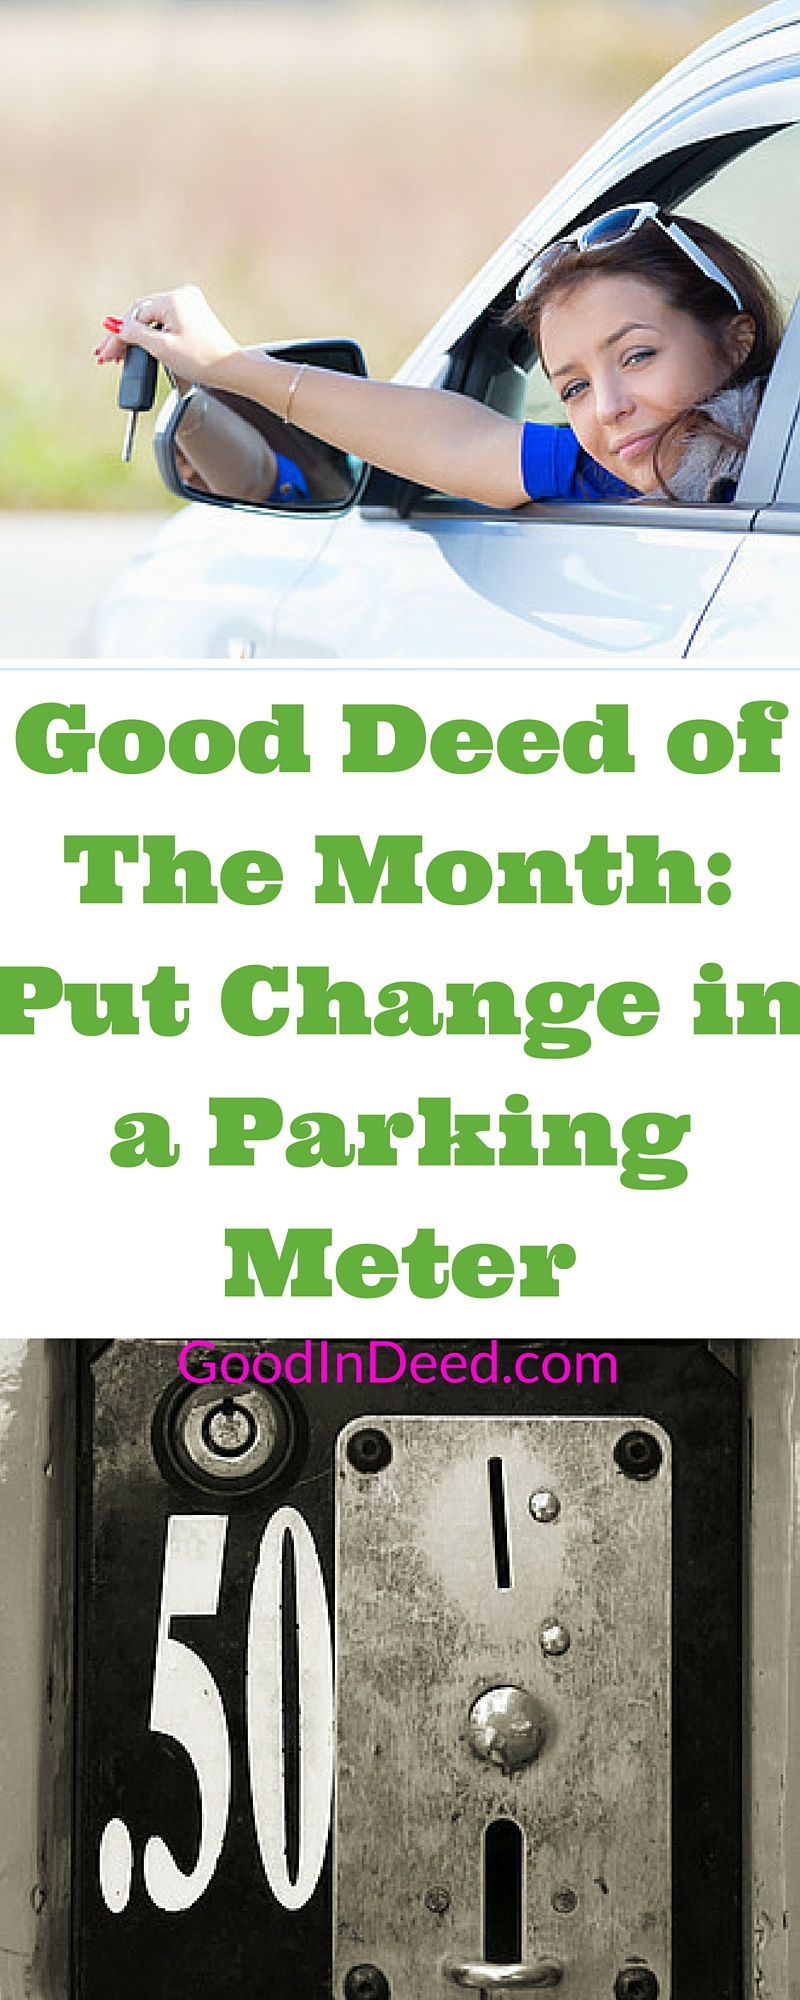 Some good deeds that get very little recognition but great rewards for others, like if you put change in a parking meter for a stranger.